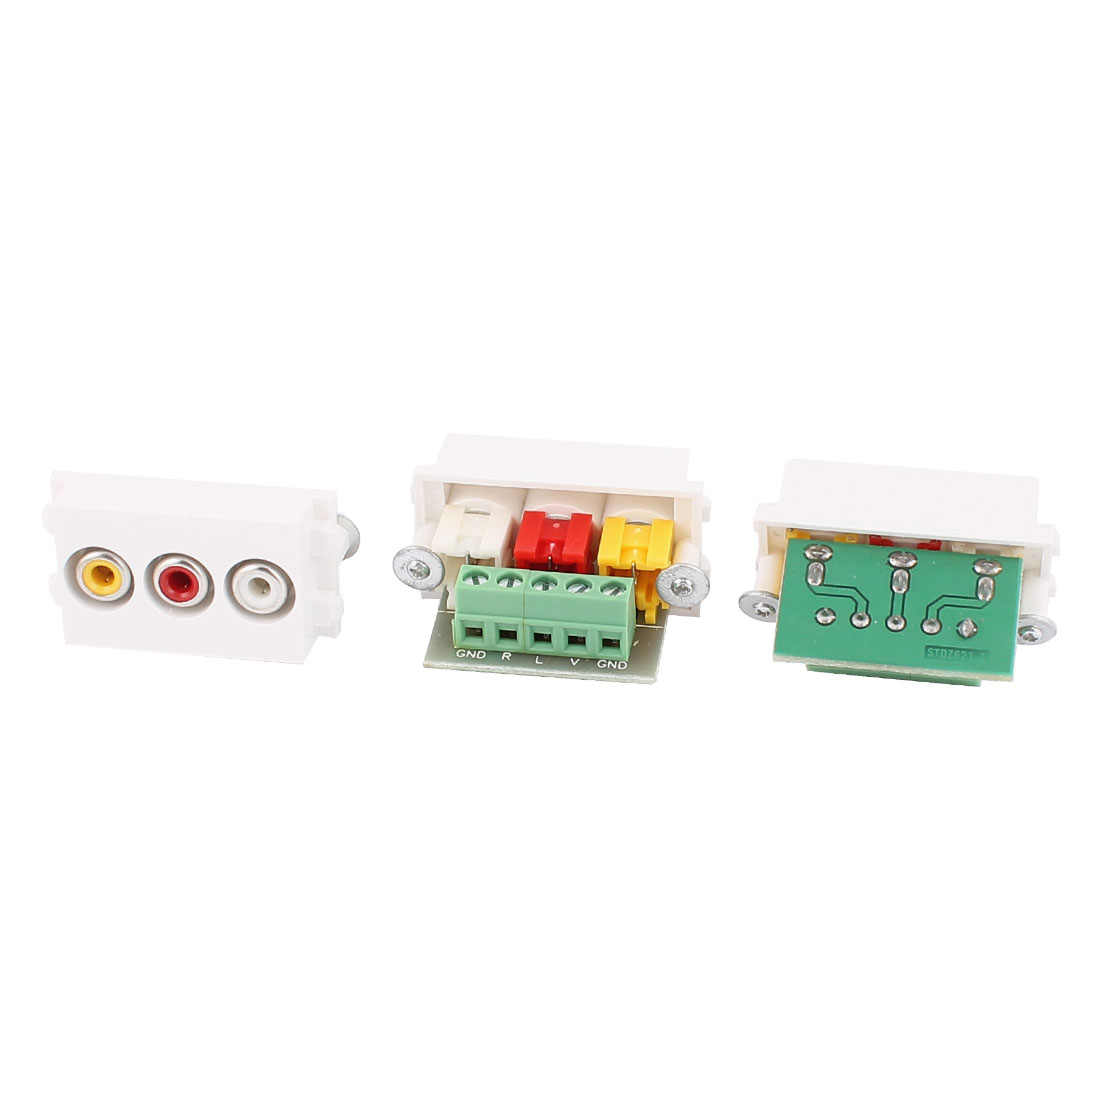 3 Pcs RCA AV Female Vedio Audio Jack Adapter Modular Socket for 128 Wall Plate Panel